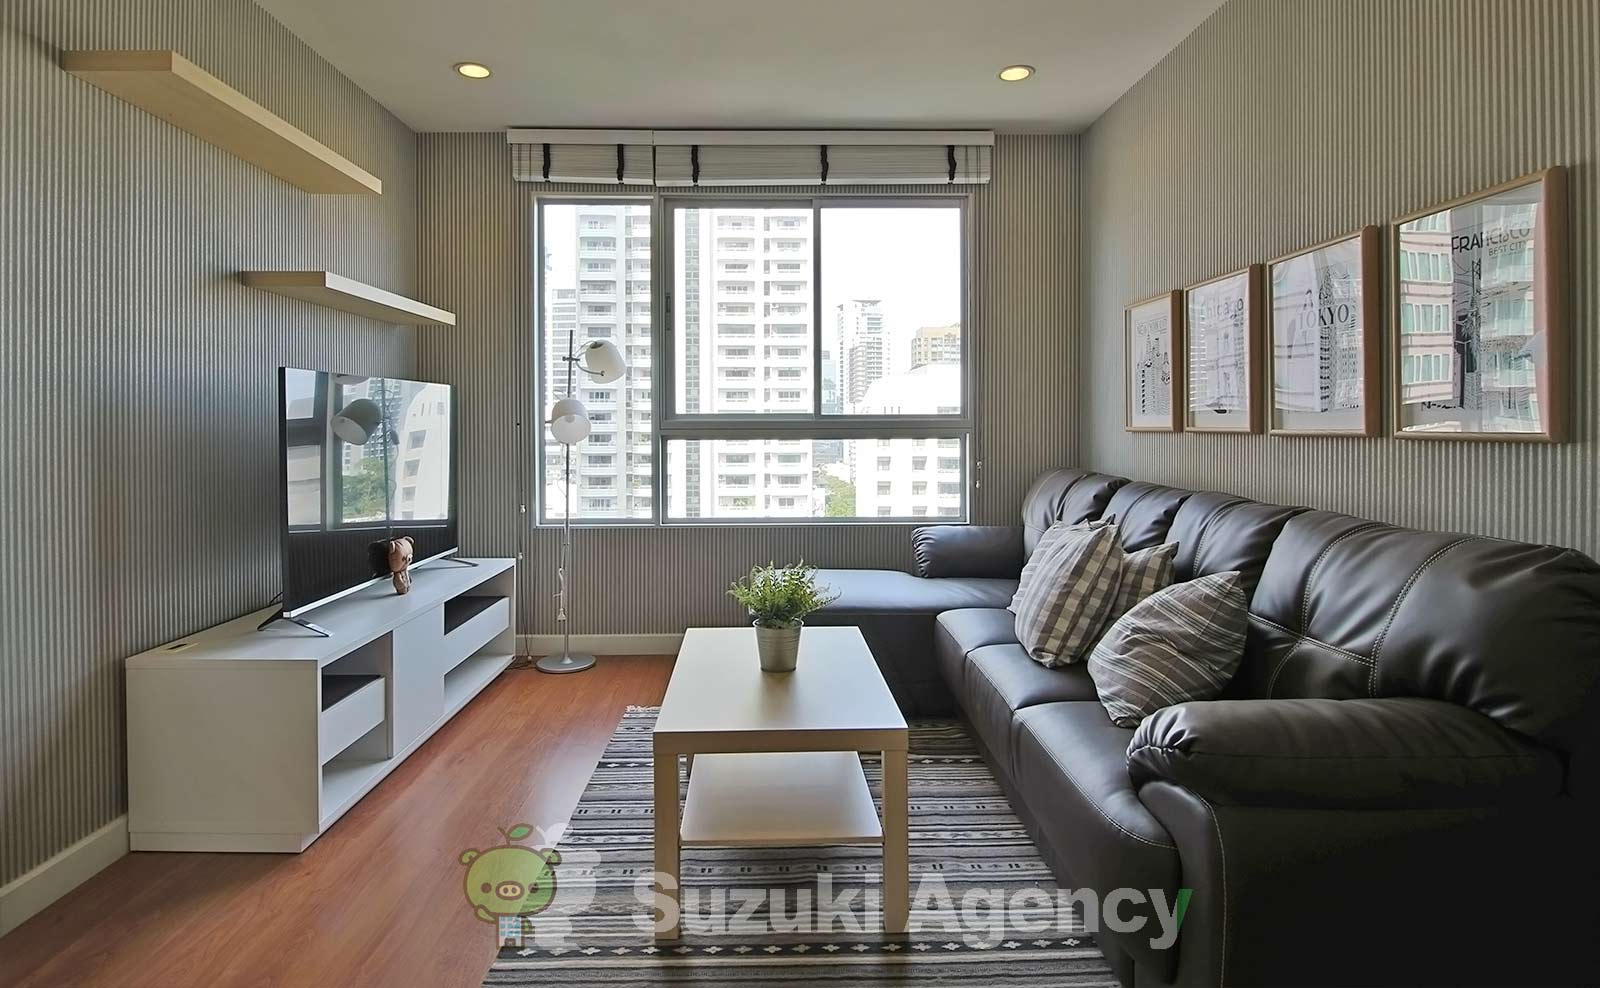 Condo One X Sukhumvit 26:1Bed Room Photos No.1